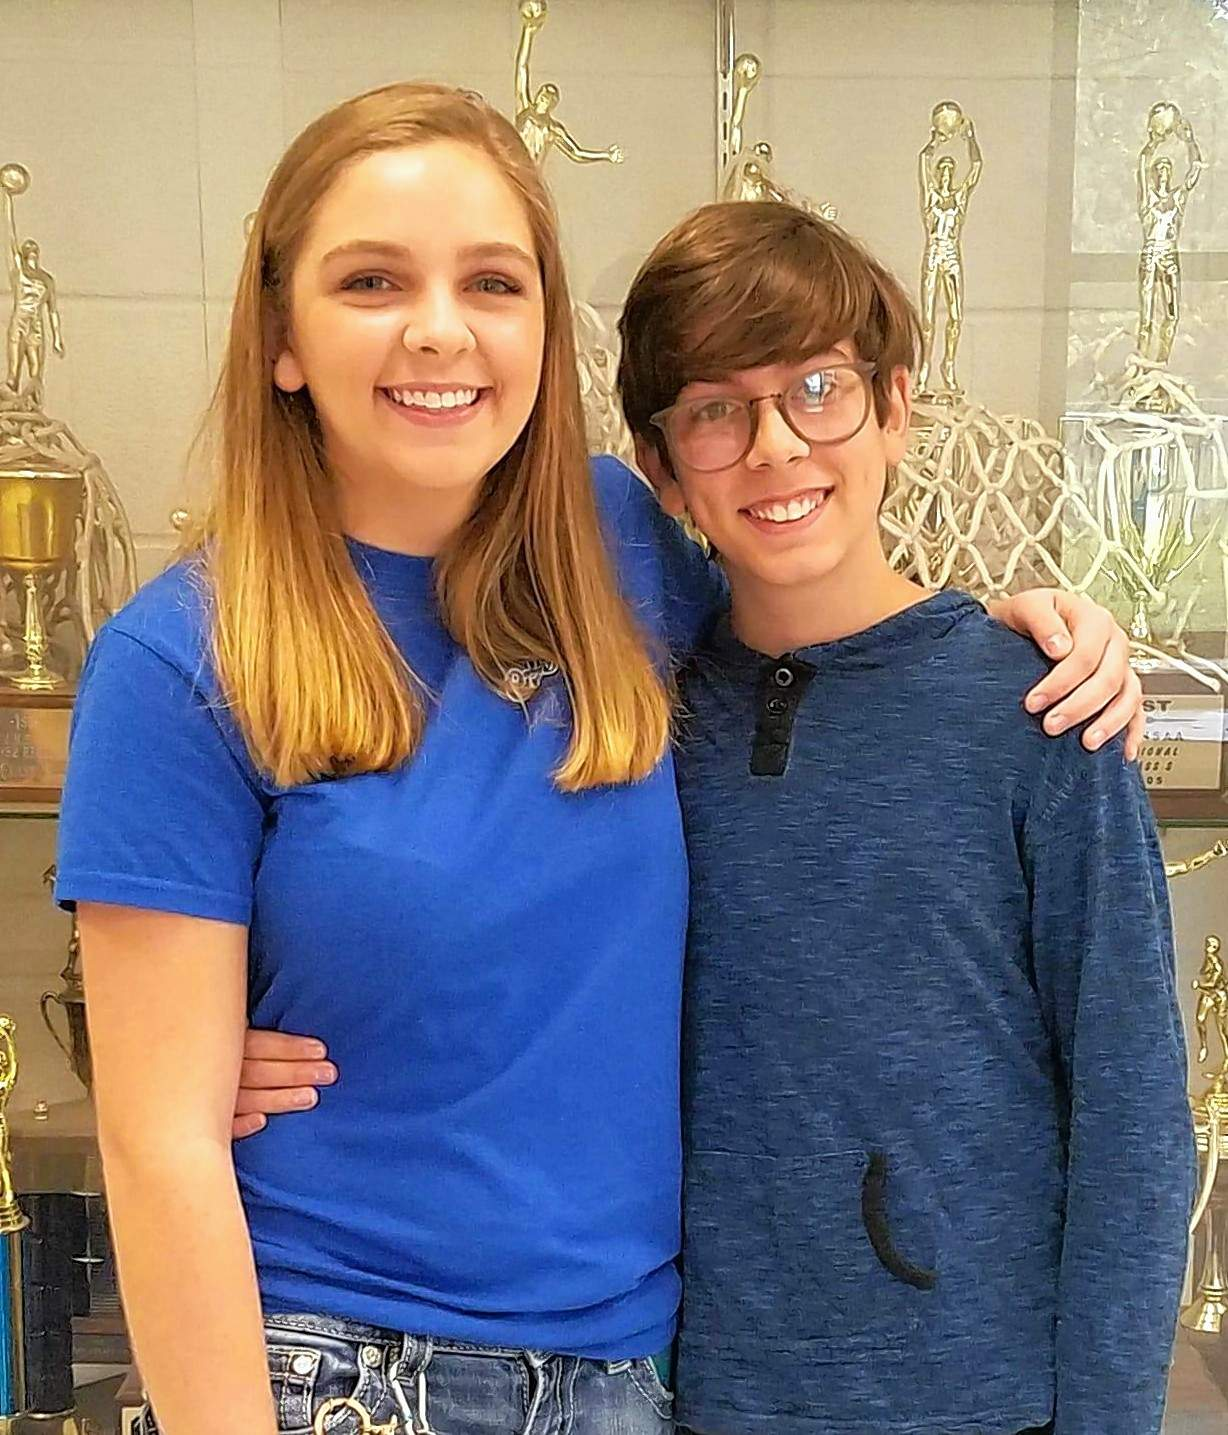 A brother-sister duo took tops spots in the Thompsonville school level of this year's VFW competitions. Senior Brandi Kerley (left) was also last year's Voice of Democracy winner for Benton's Post 2671. Her eighth-grade brother, Gavin, took the school's top spot in the Patriot's Pen essay competition.